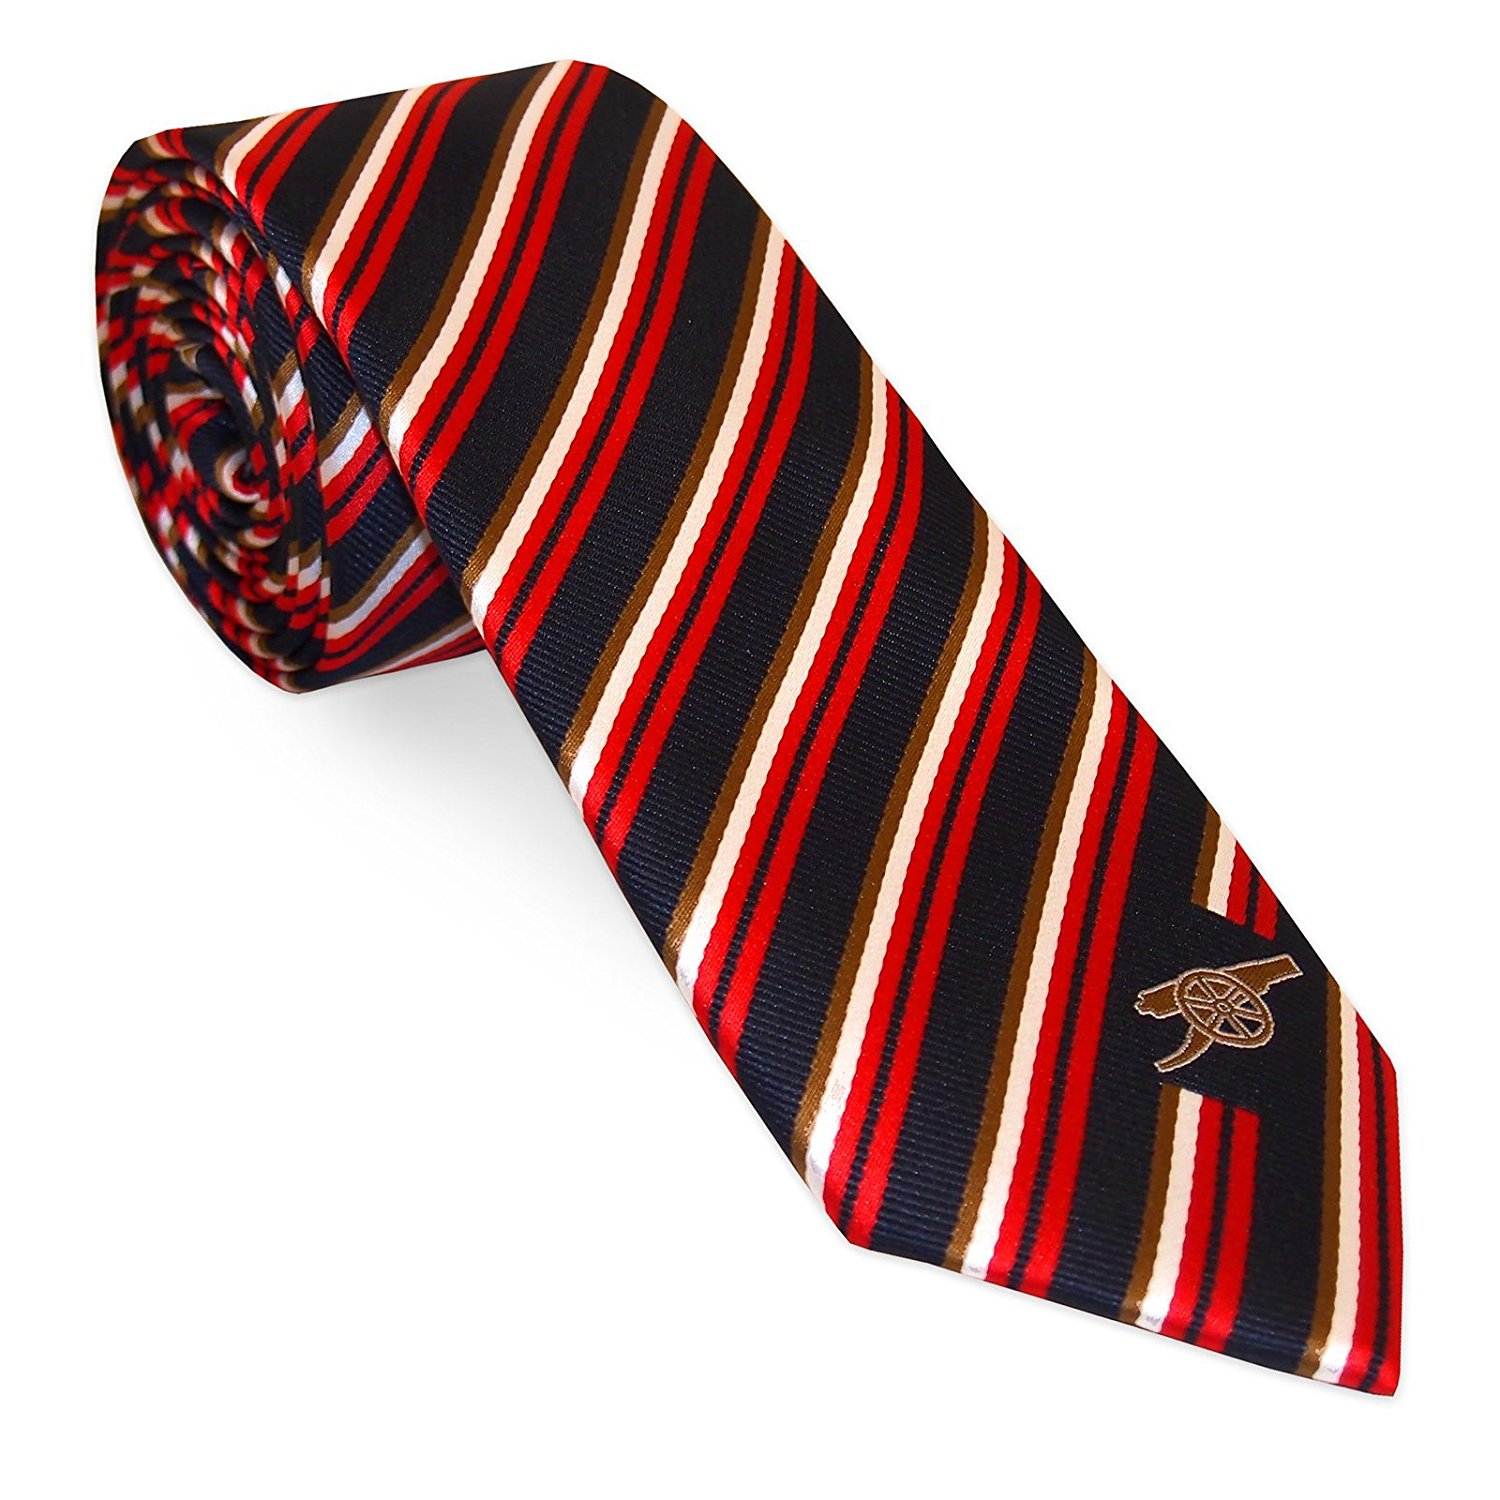 059fdbe63e0a Get Quotations · Arsenal Football Club Official Soccer Gift Club Crest Tie